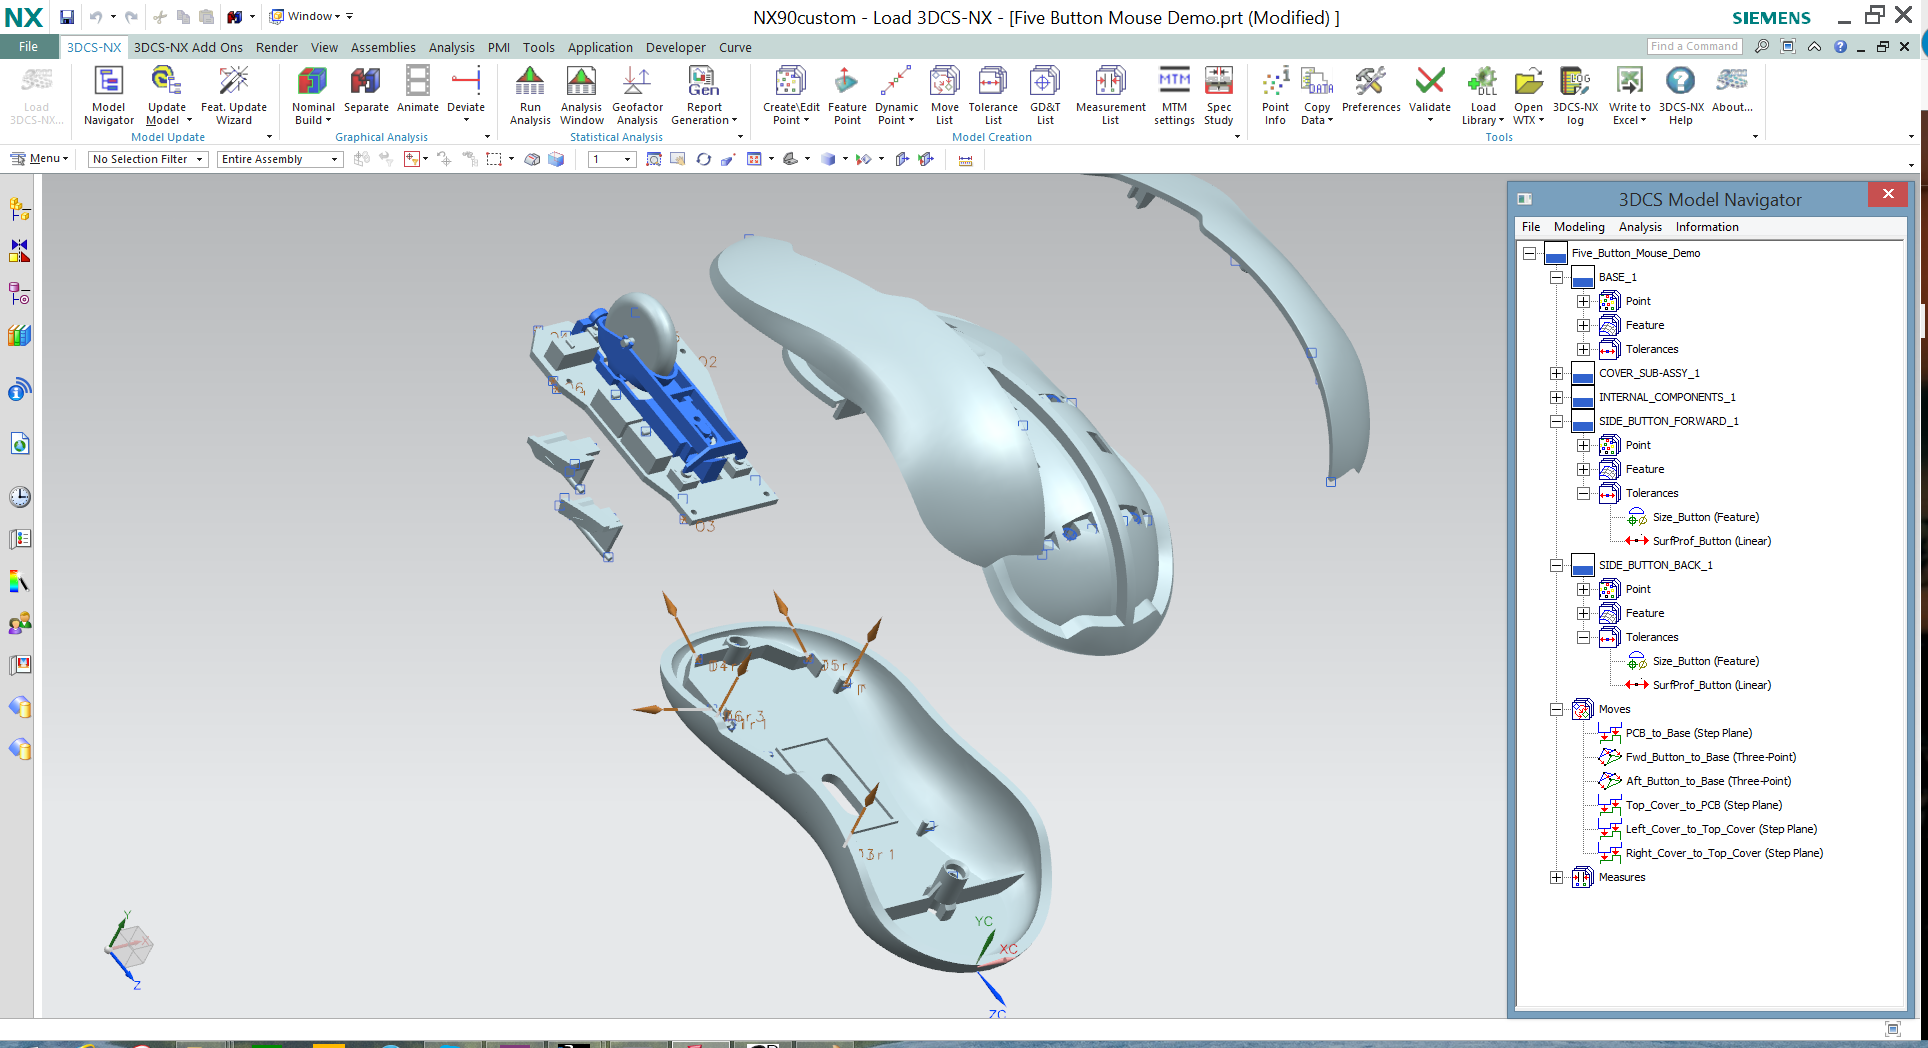 3dcs-nx-mouse-assembly-process.png